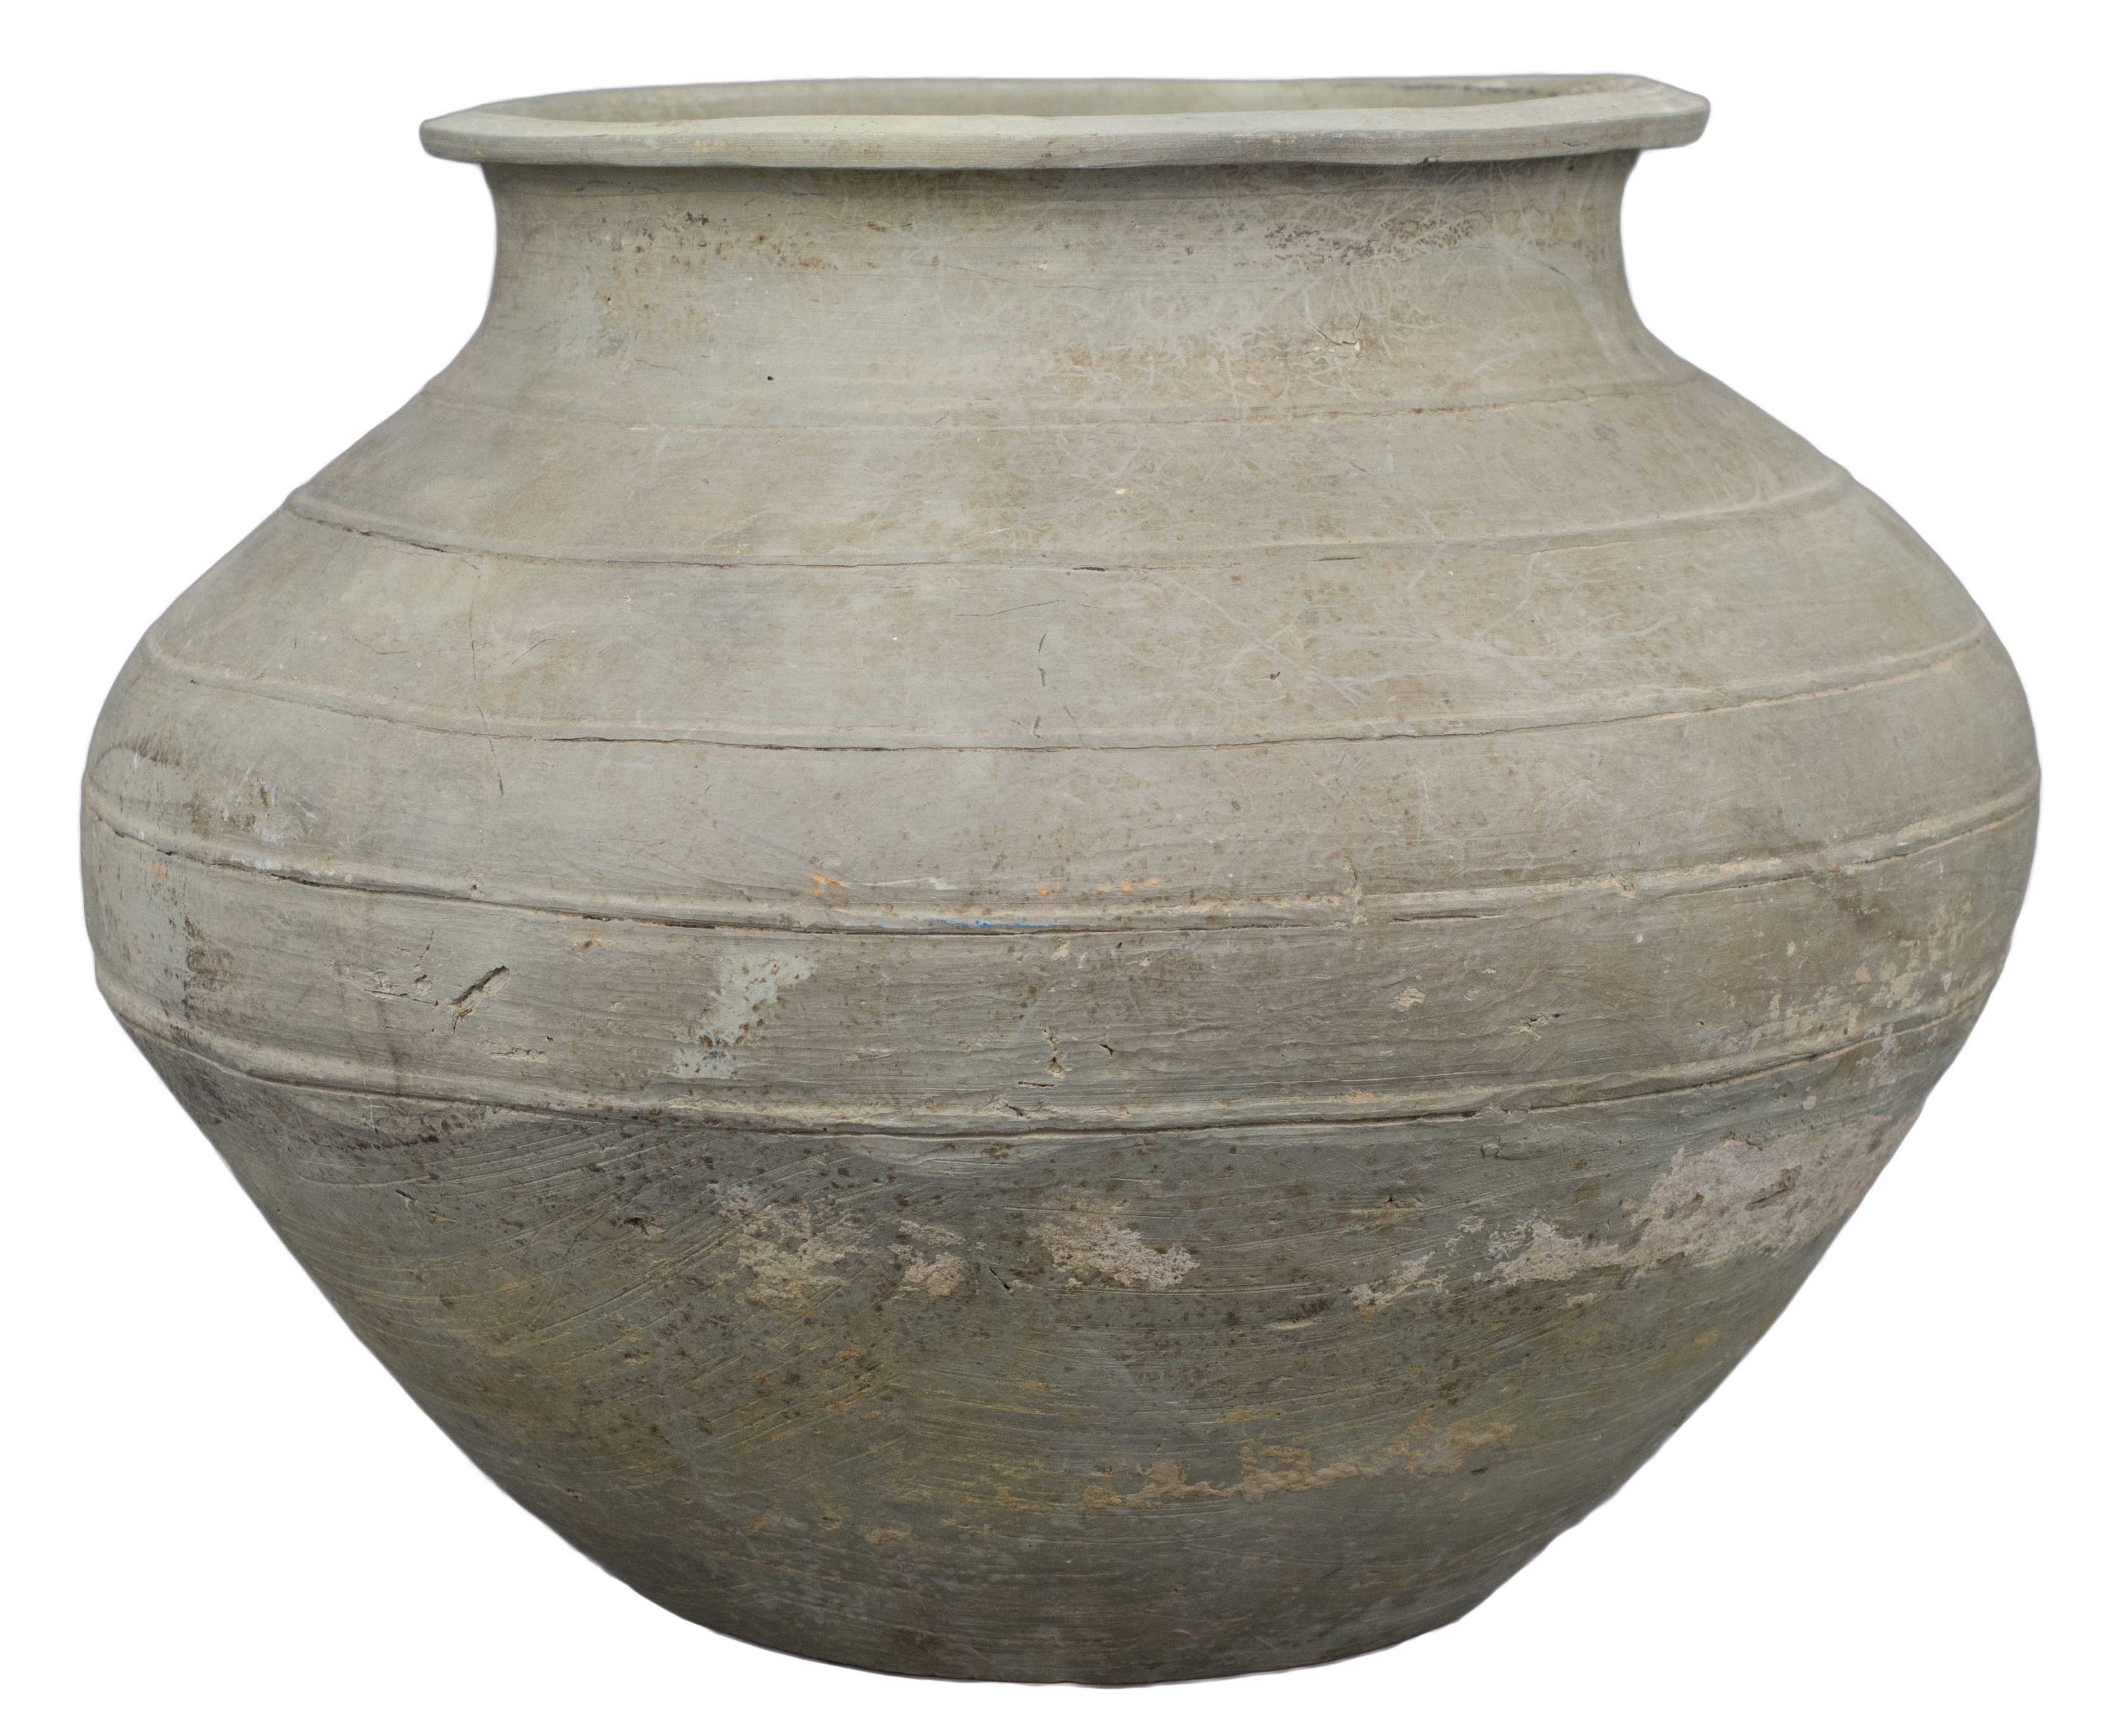 Lot 57 - A Fine Chinese Warring States Pottery Jar (475 – 221 BC)